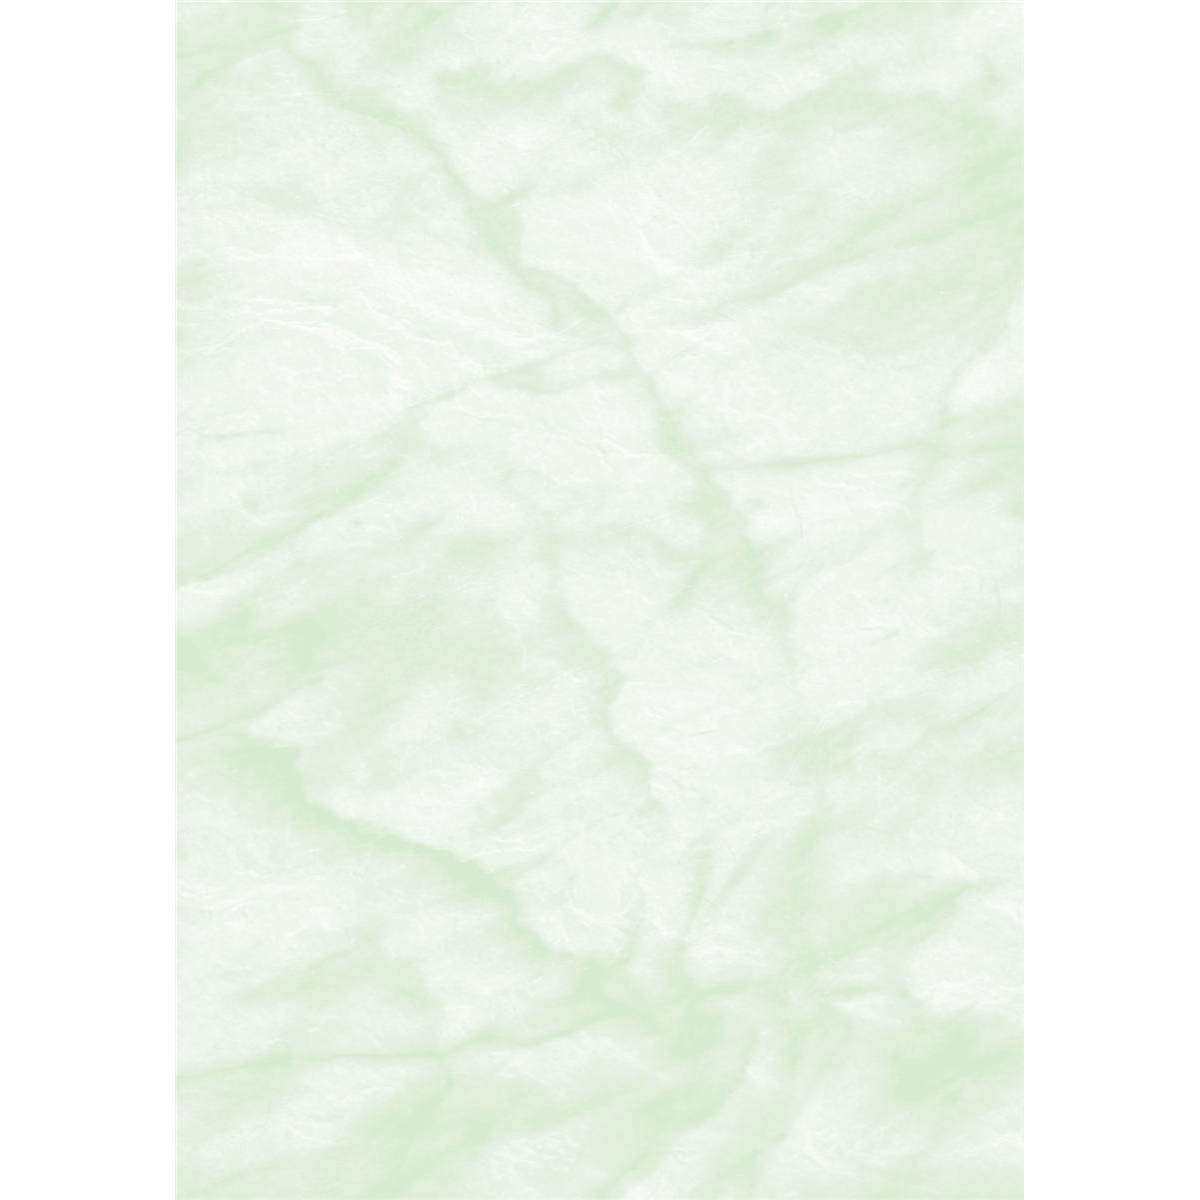 A4 Marble Paper for Laser and Inkjet Printers 90gsm A4 Green 100 Sheets